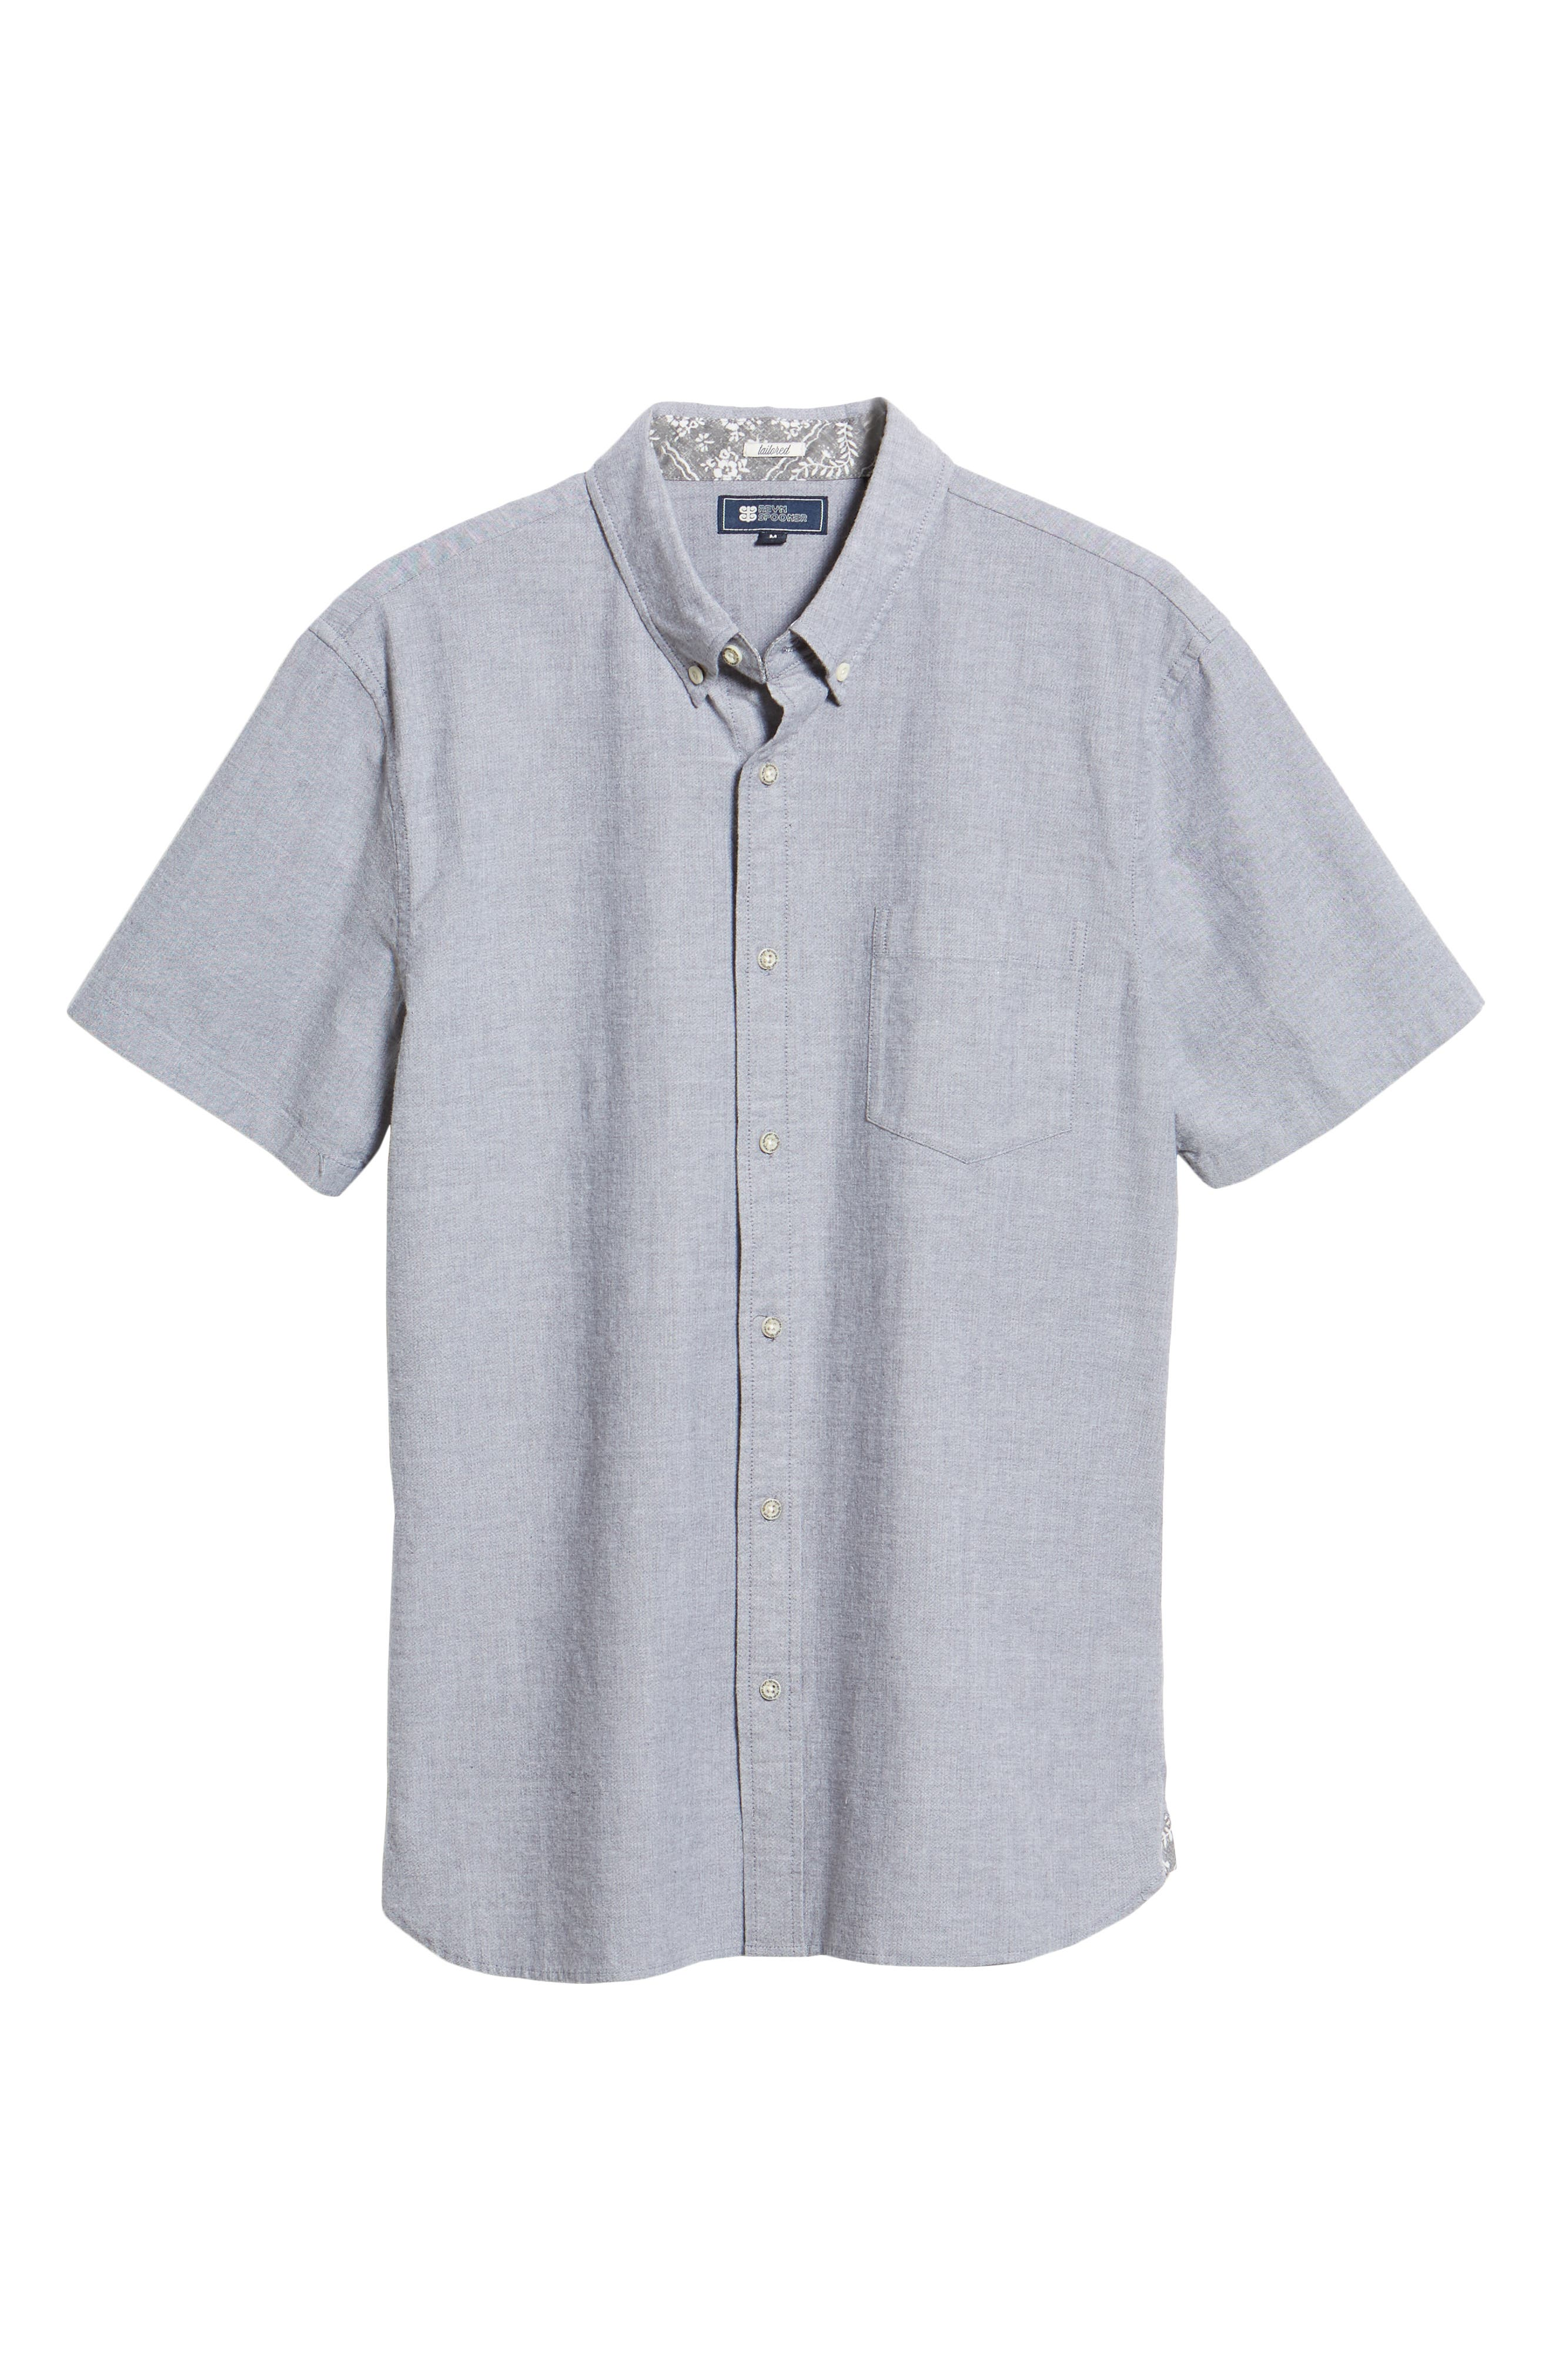 Regular Fit Solid Stretch Oxford Sport Shirt,                             Alternate thumbnail 5, color,                             GREY